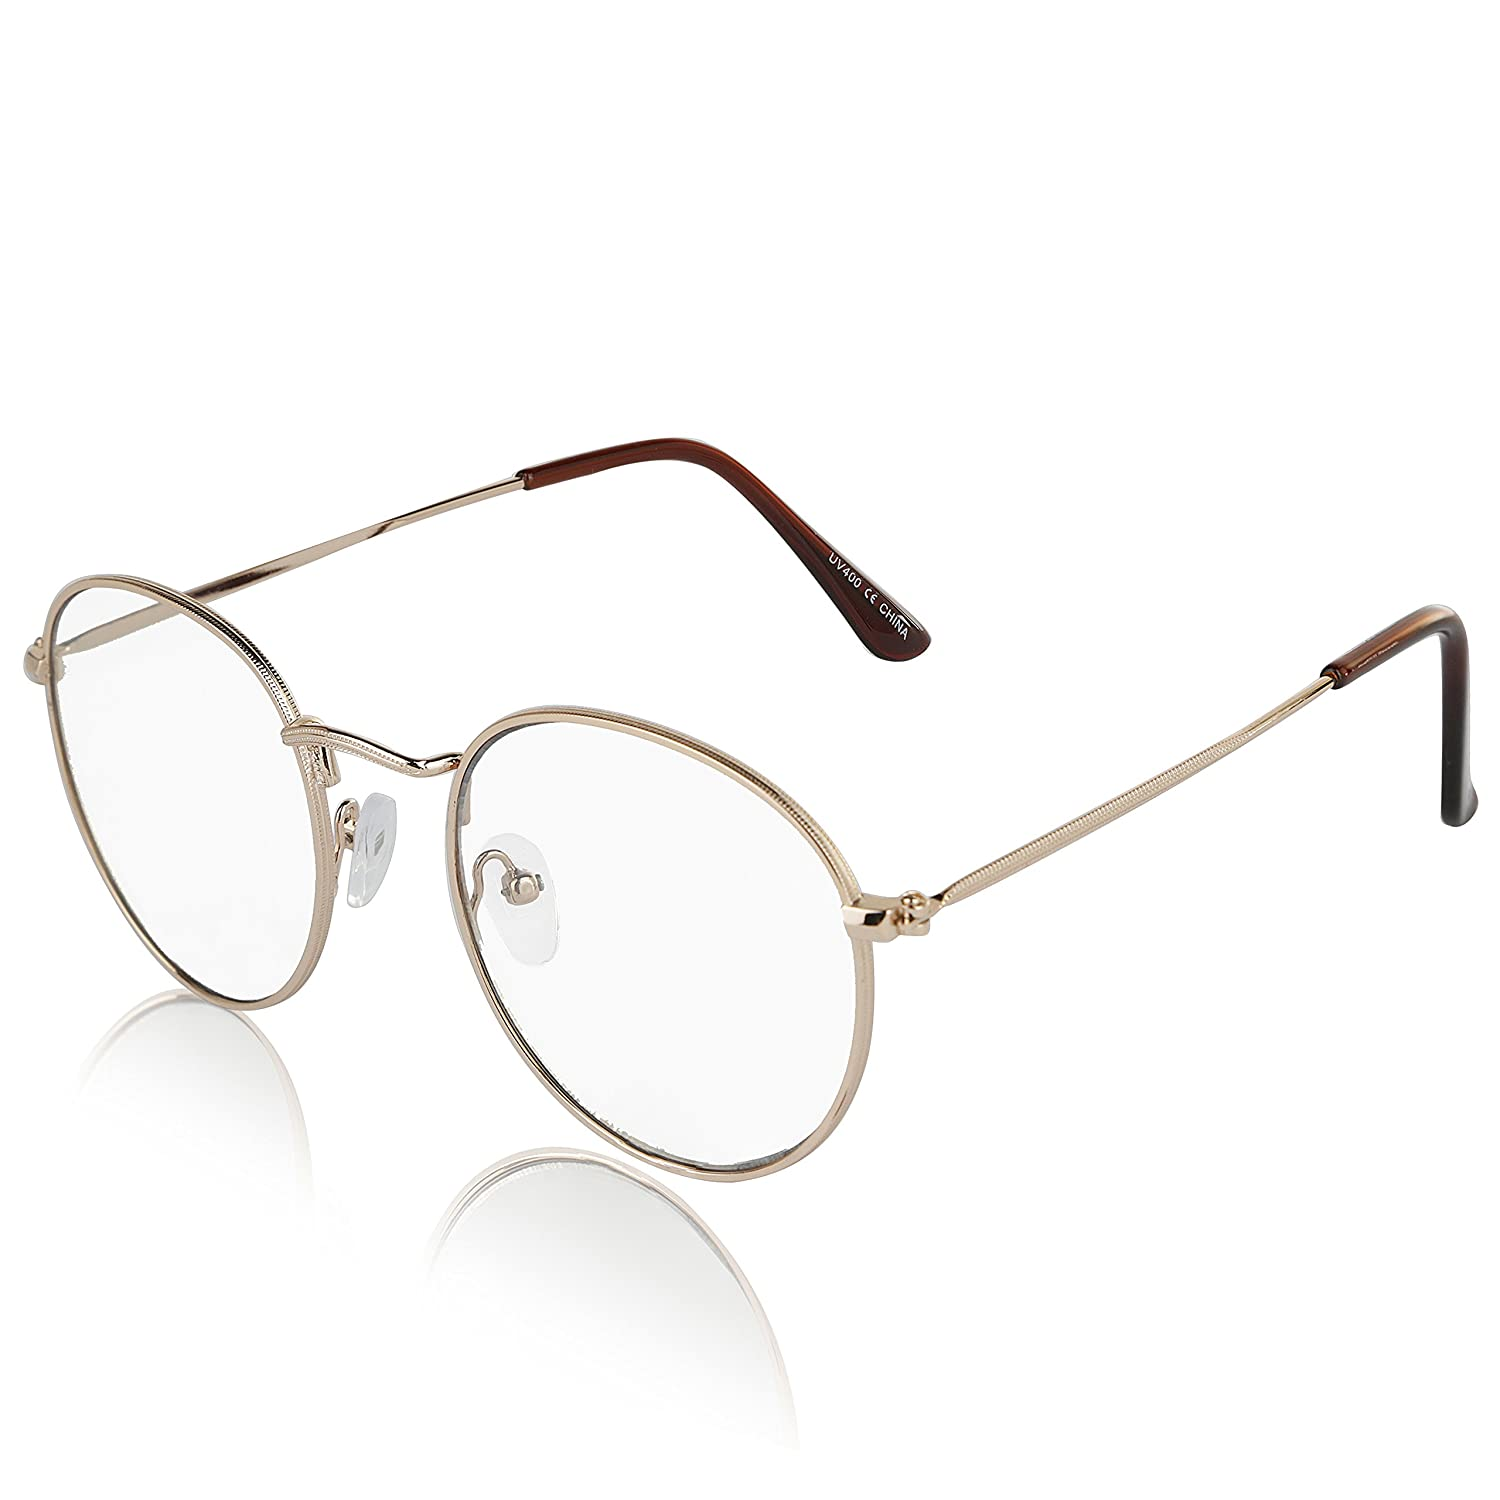 1ab67757fc2 Amazon.com  Non Prescription Retro Fake Clear Lens Gold Metal Frame  Eyeglasses Woman UV400  Clothing